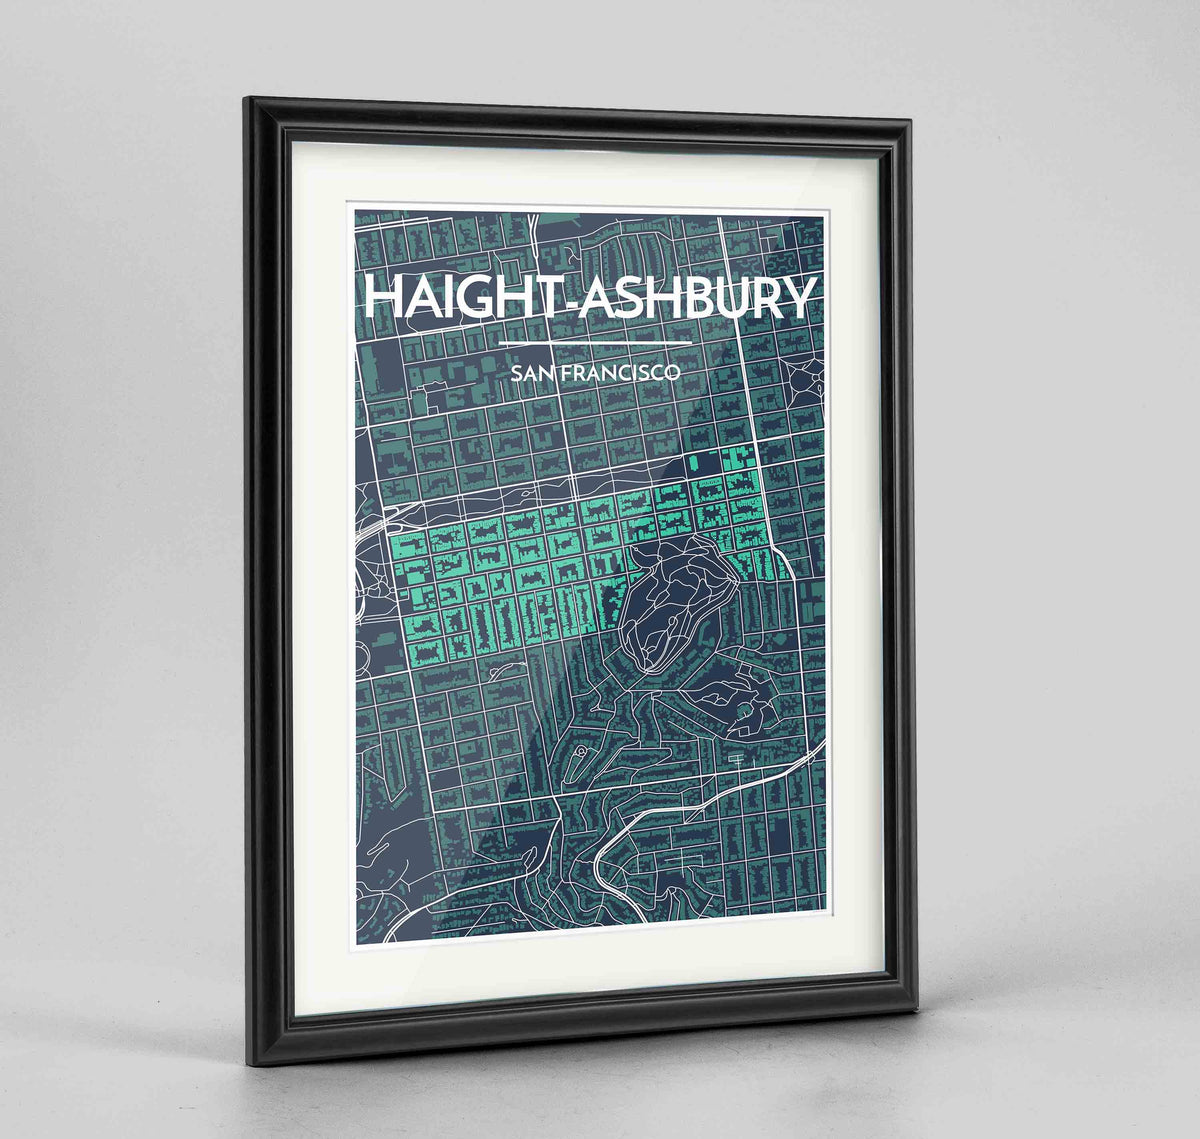 "Framed Haight-Ashbury San Francisco Map Art Print 24x36"" Traditional Black frame Point Two Design Group"